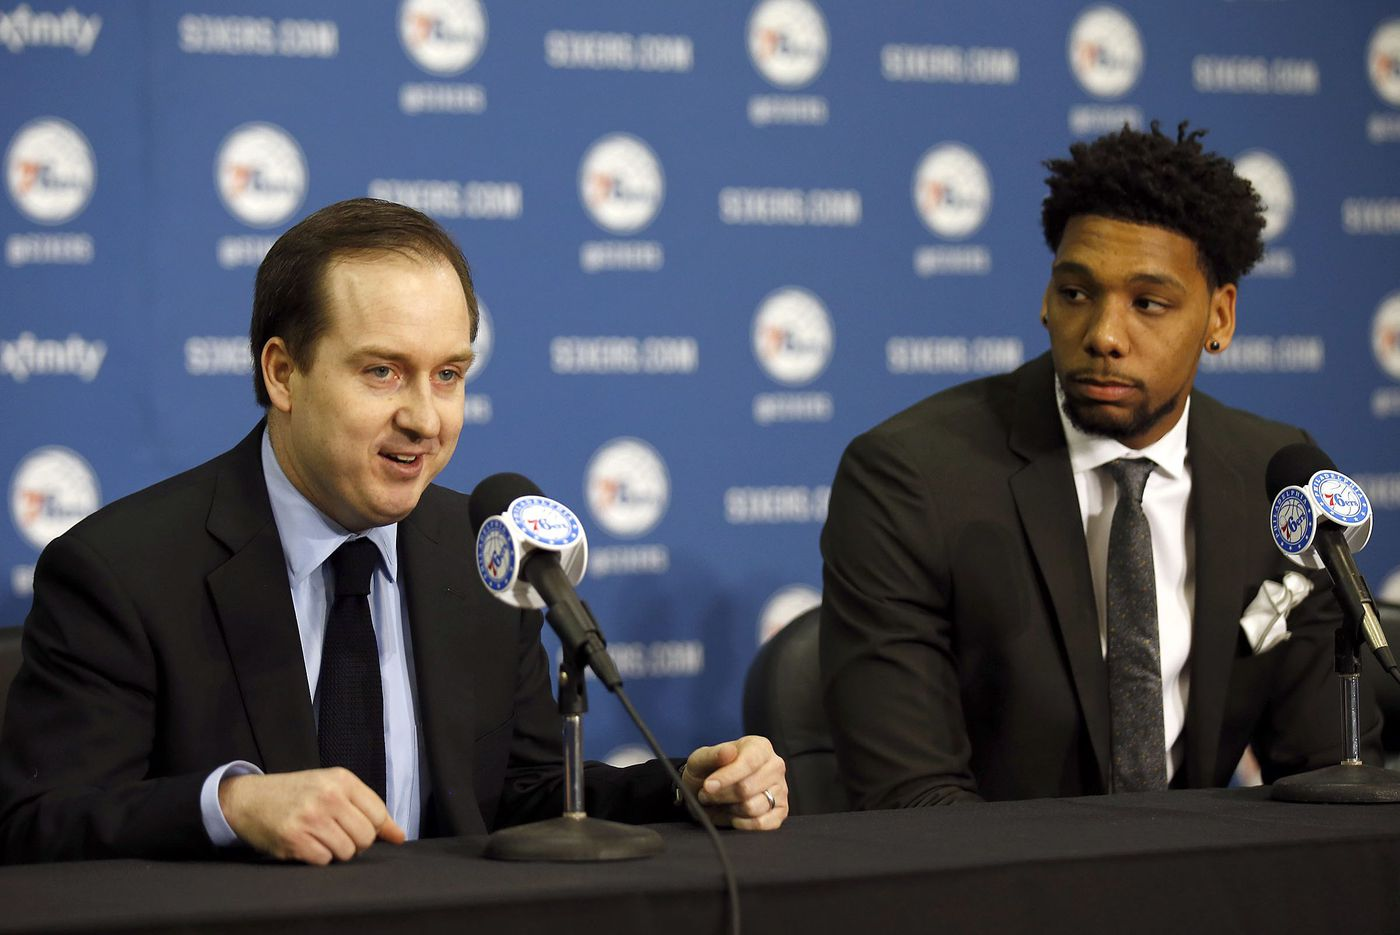 How Sam Hinkie and Bryan Colangelo managed the Sixers' draft 'Process'